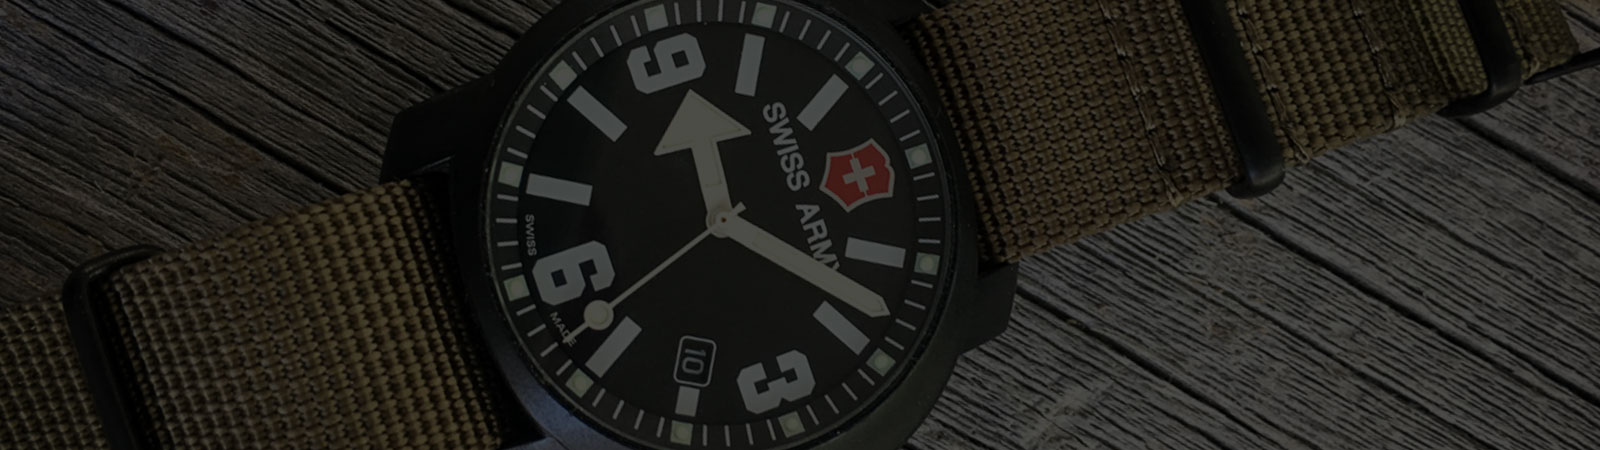 MEET THE WATCH: Victorinox Swiss Army Recon Watch with the Giant Arrow Hand